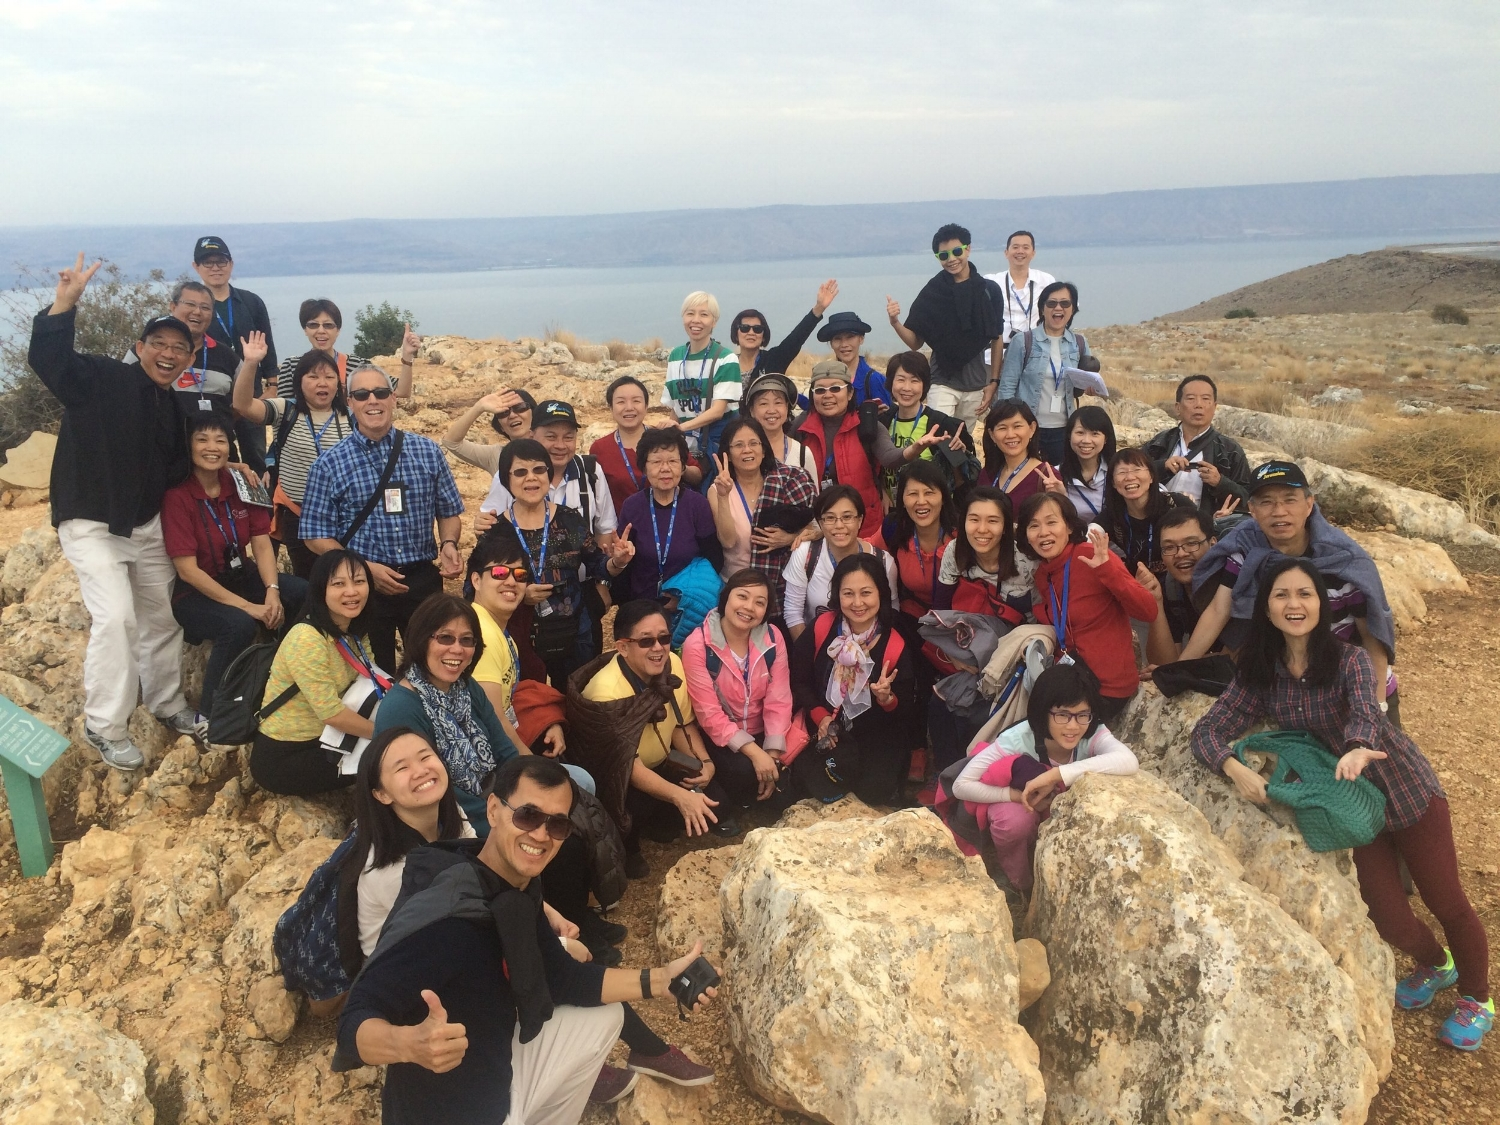 friends from asia - Mount Arbel and Sea of Galilee Region